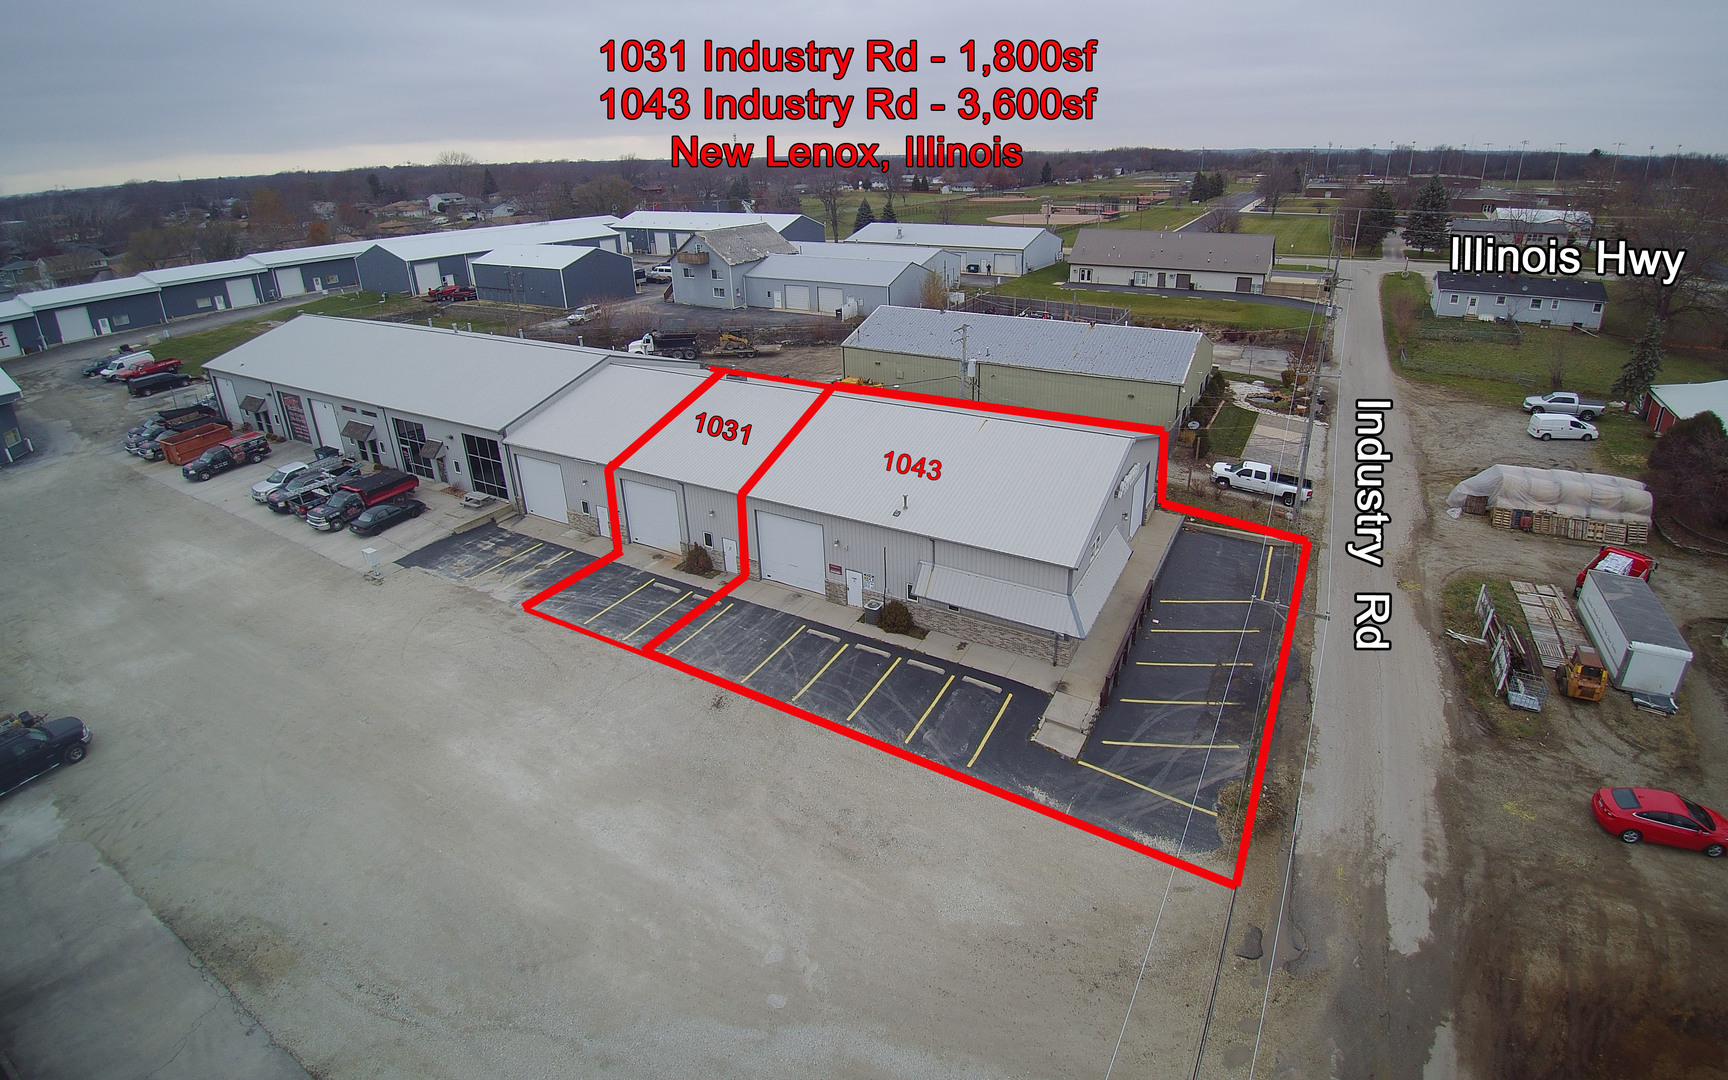 Illinois will county crest hill 60435 - 1043 Industry Road 1027 4